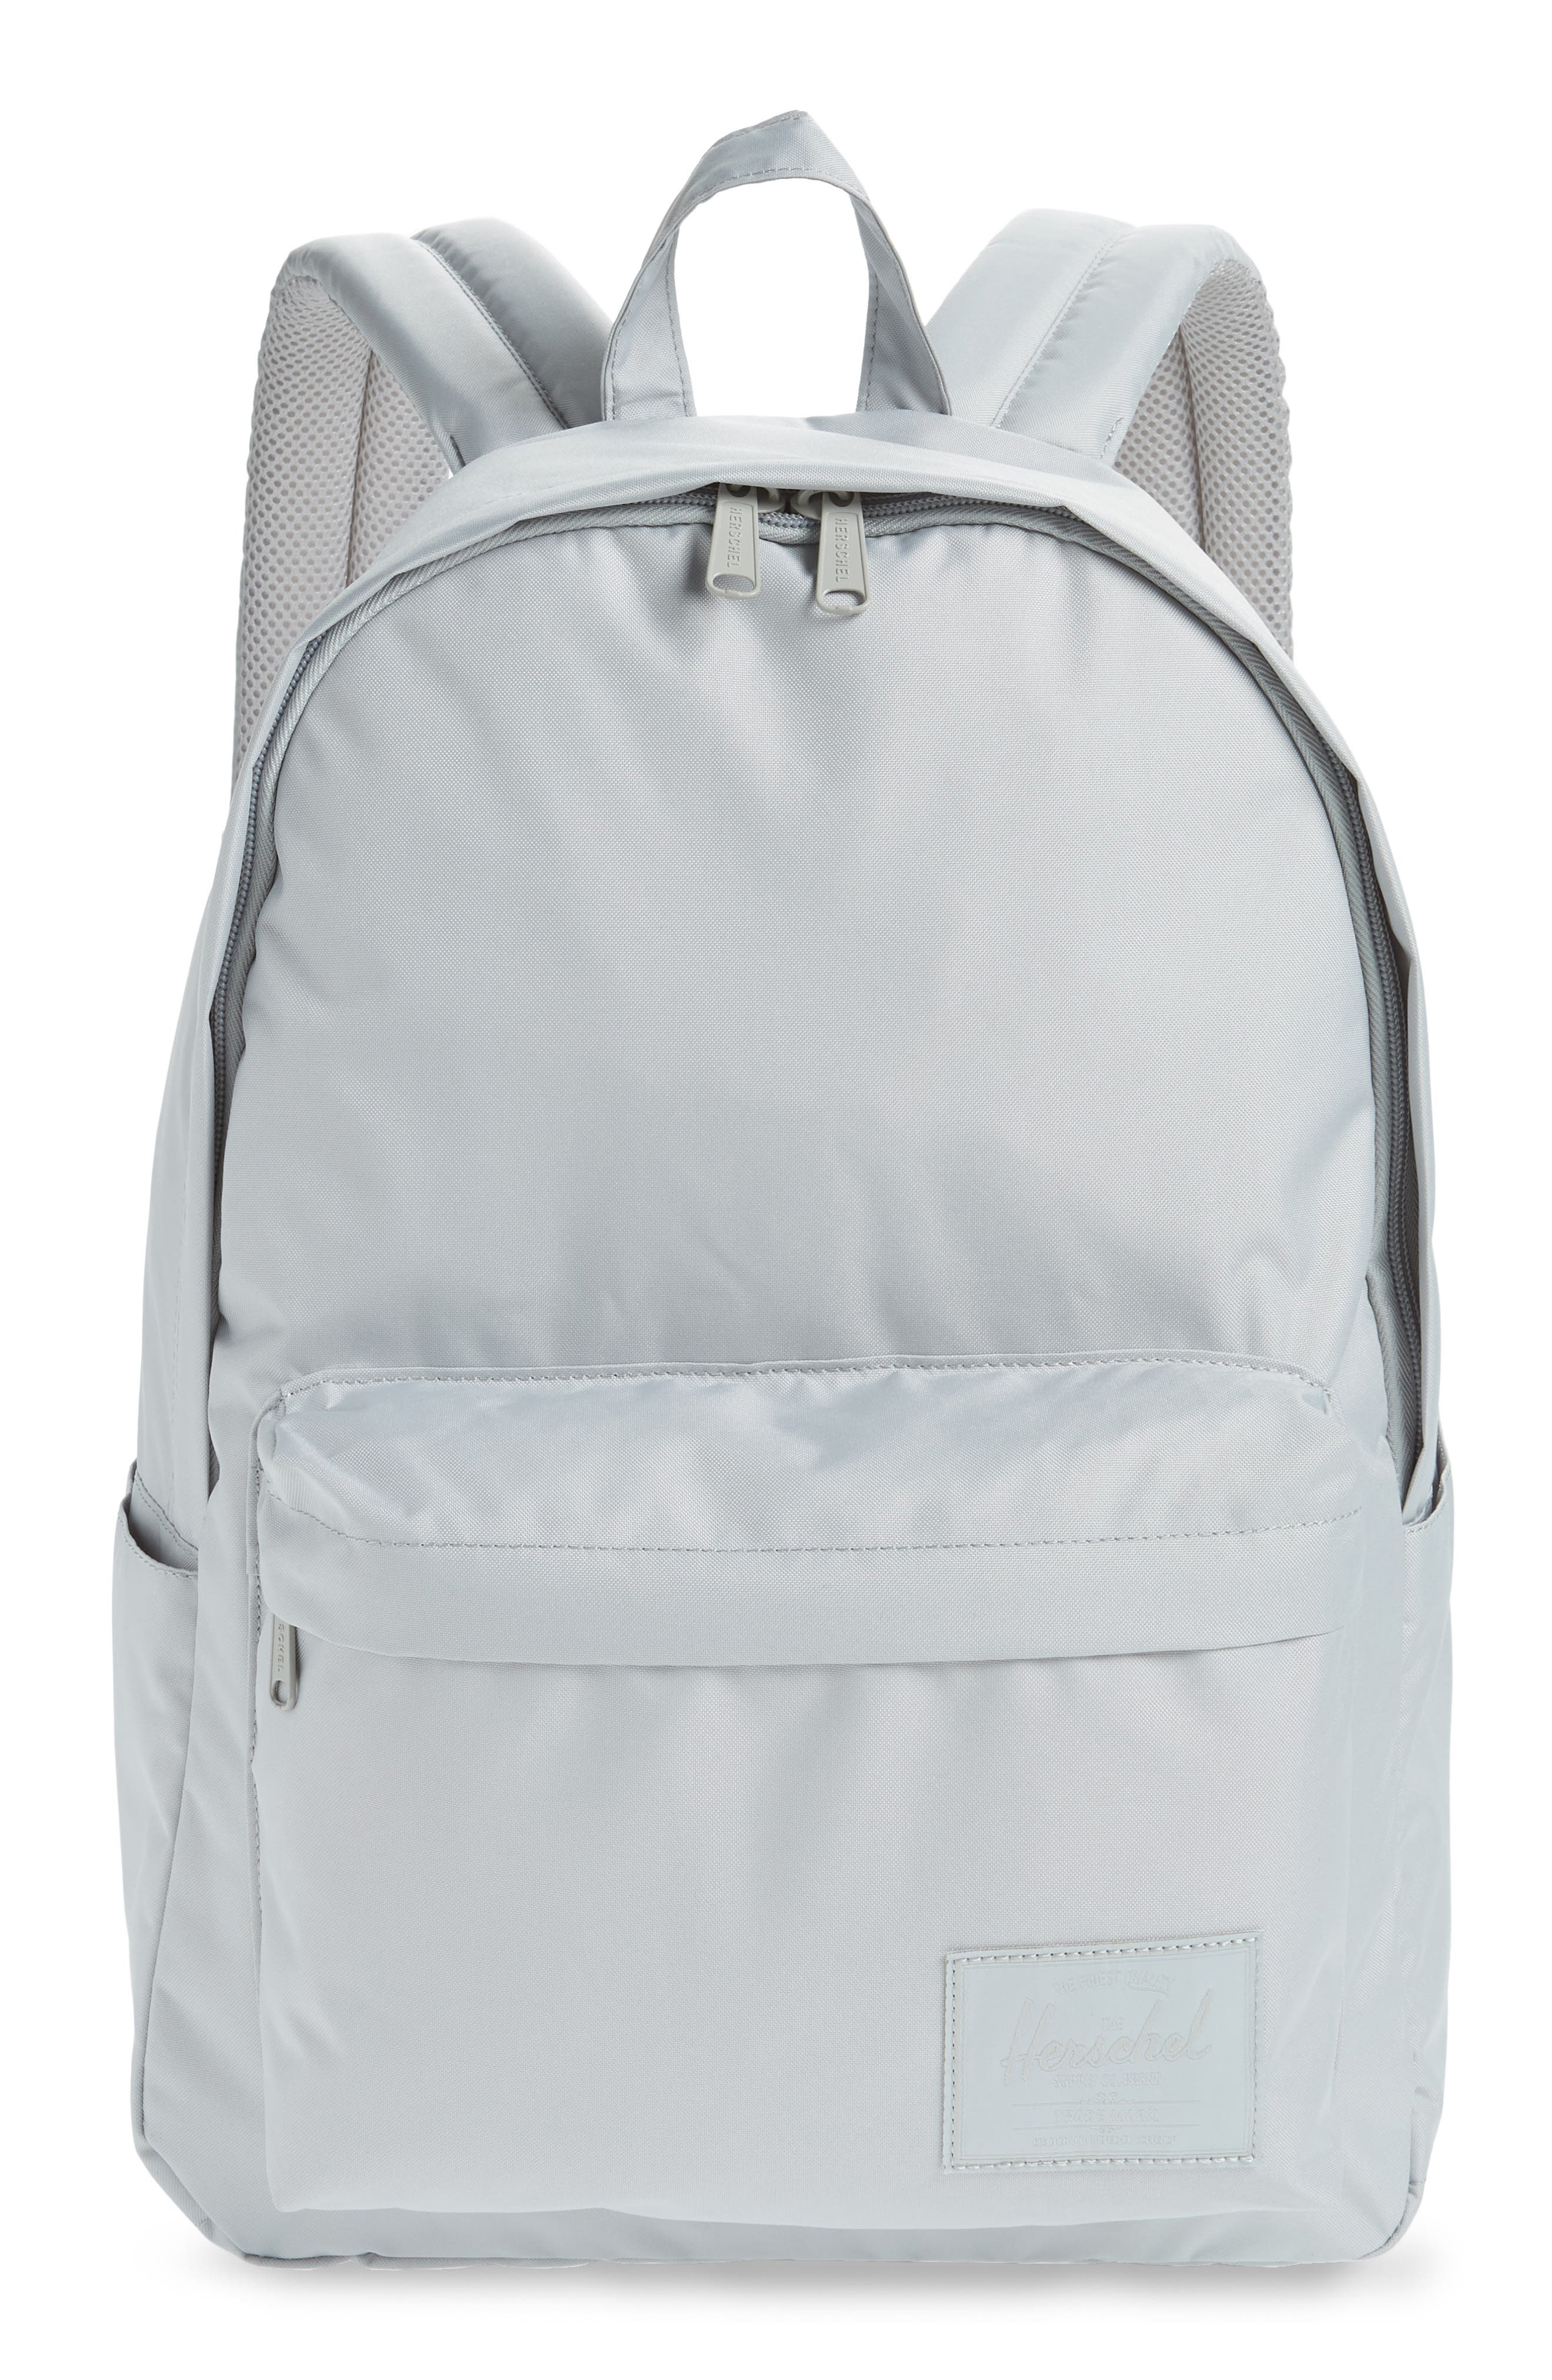 Herschel Supply Co. Classic X-Large Backpack - Grey